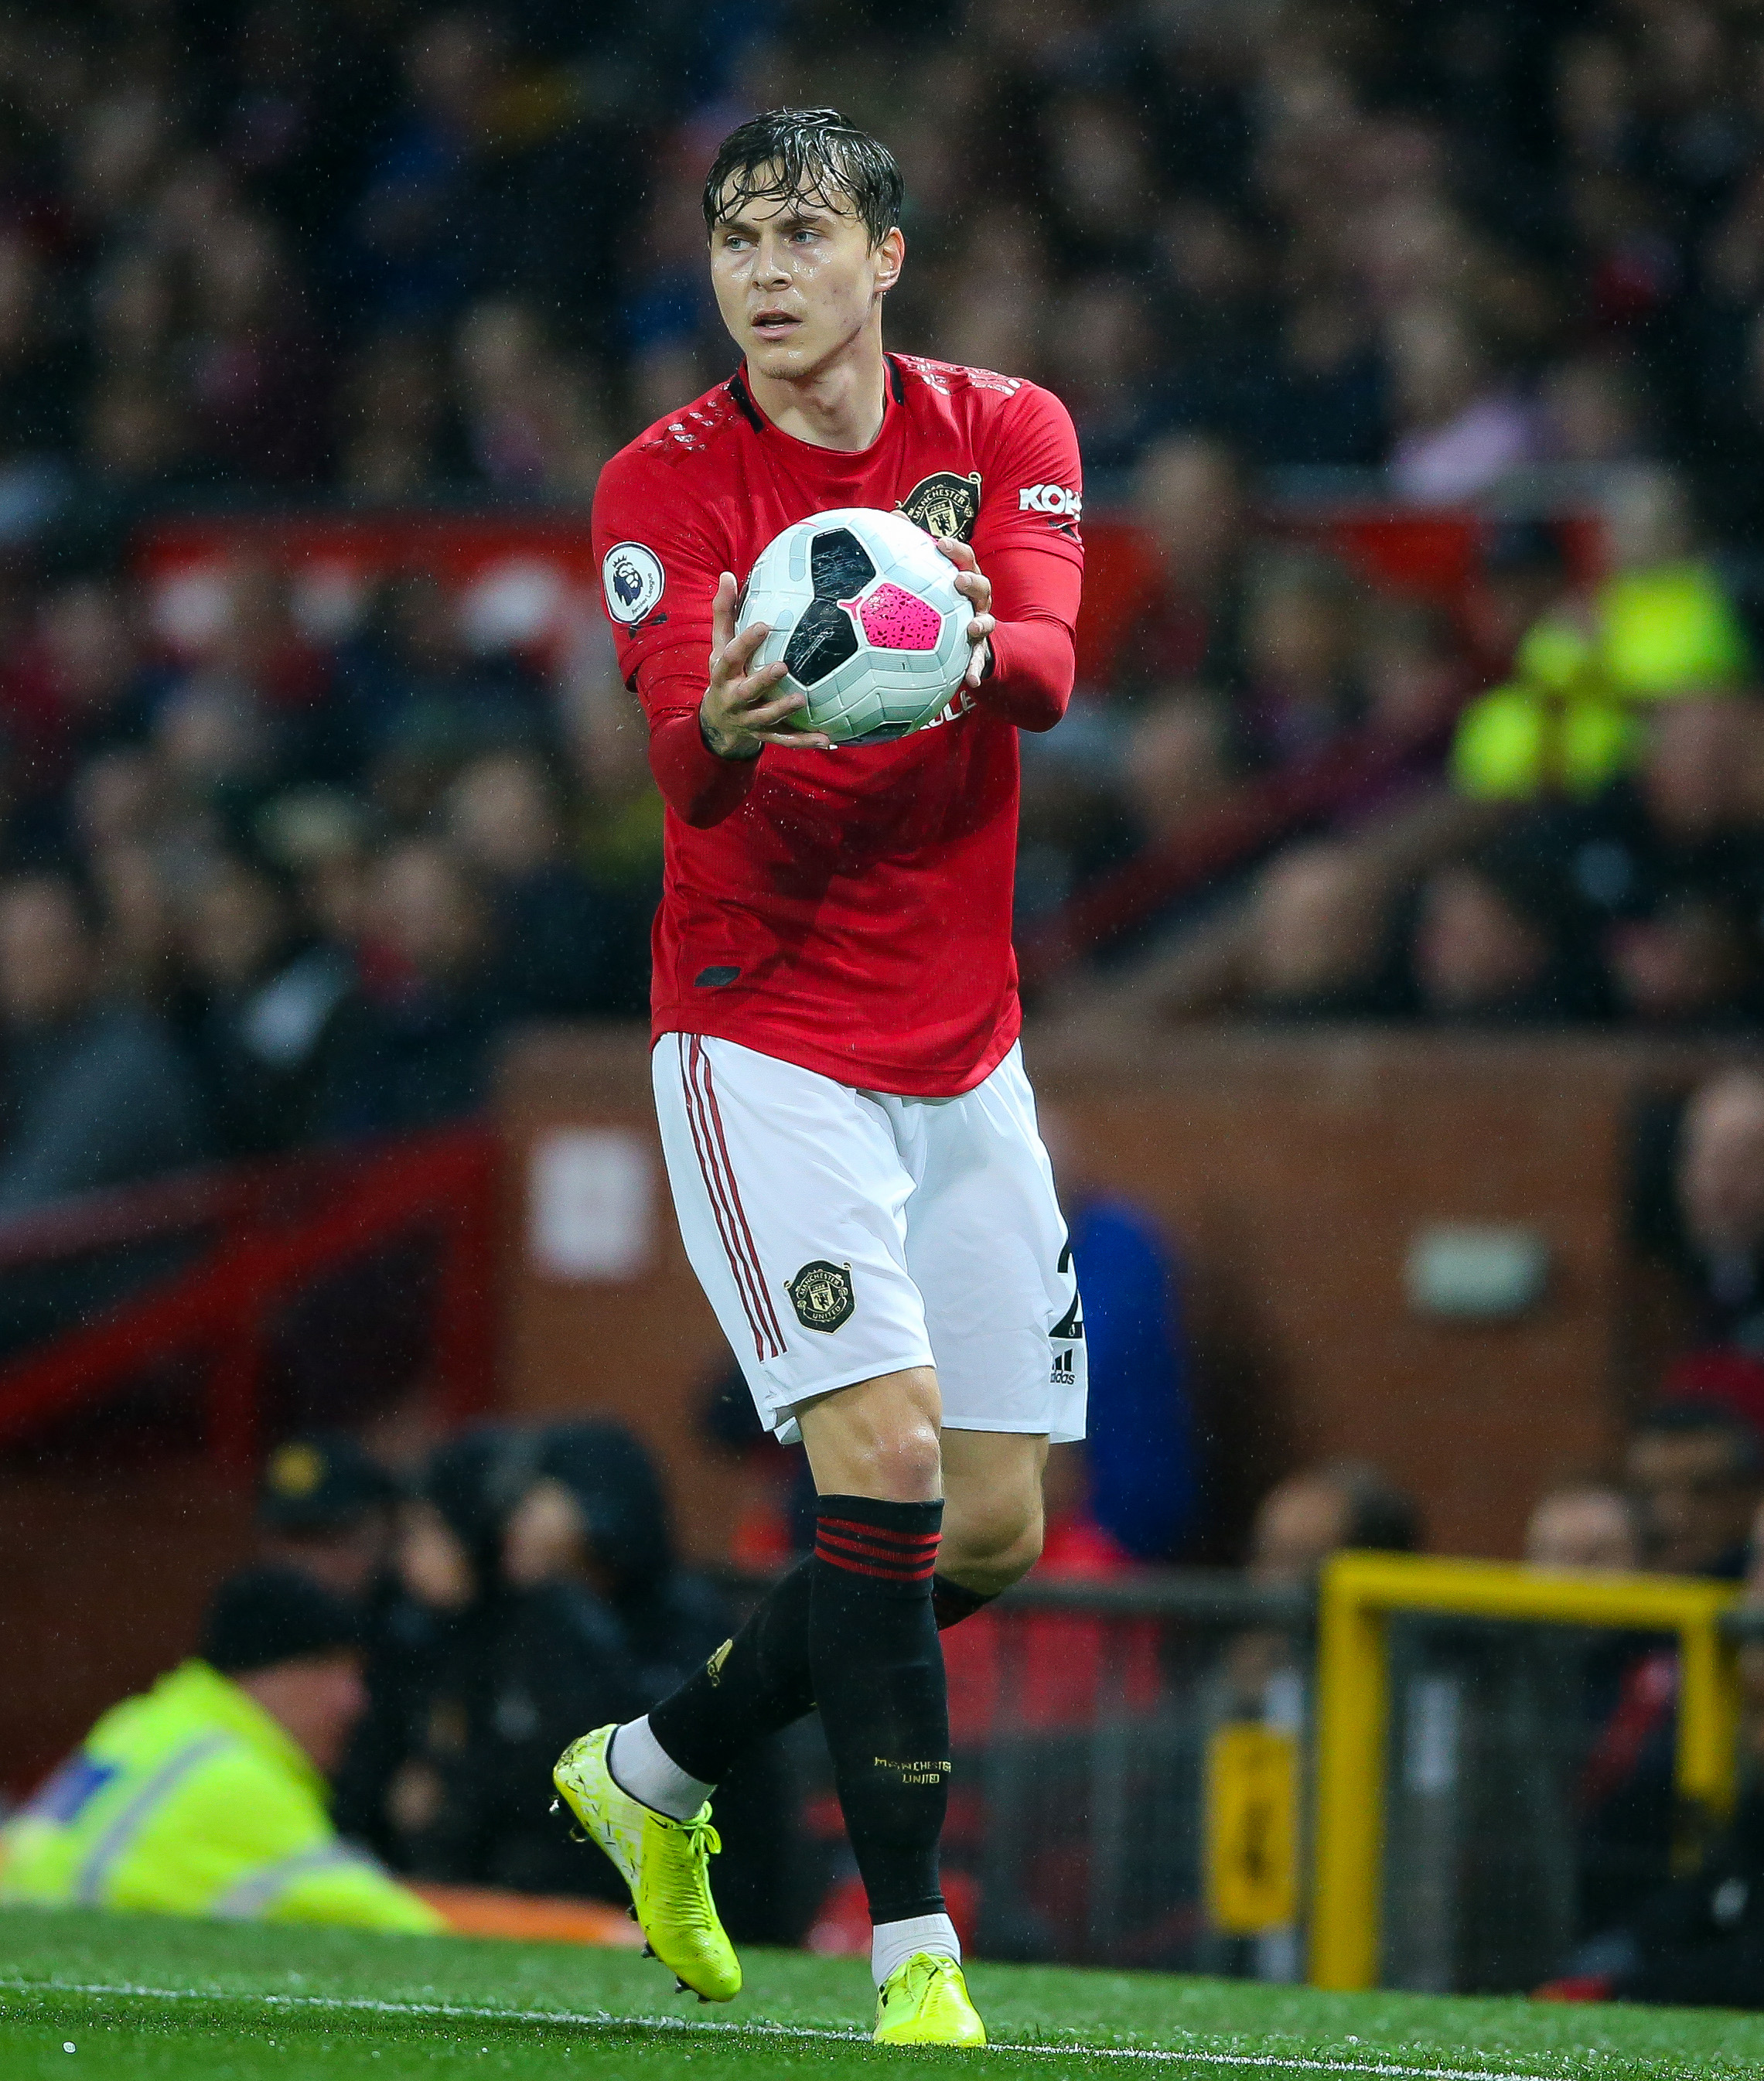 Manchester United defender Victor Lindelof wins Swedish golden ball